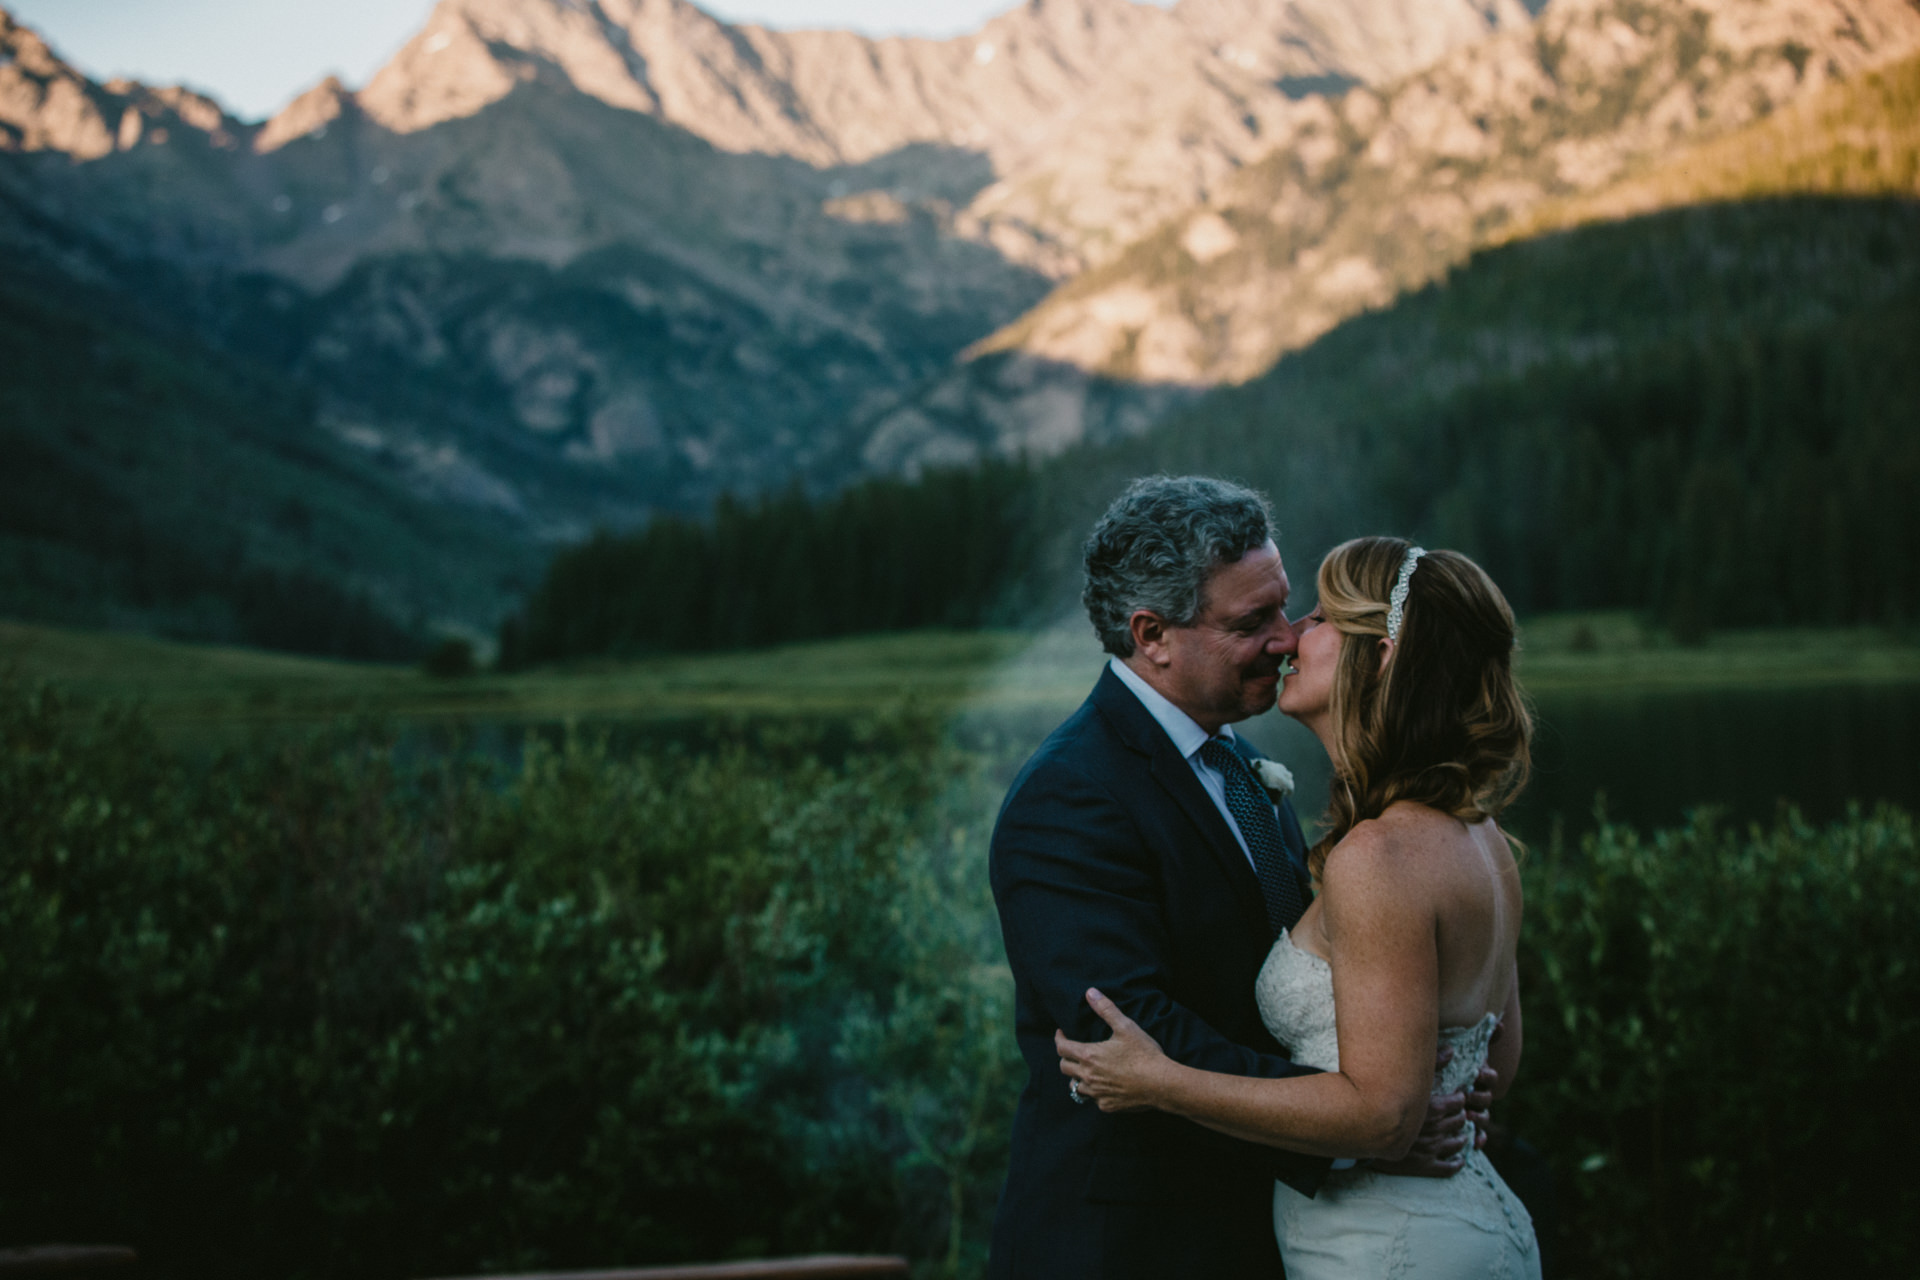 Rustic Vail Wedding Photos - Colorado Images | in front of the freshly extinguished campfire